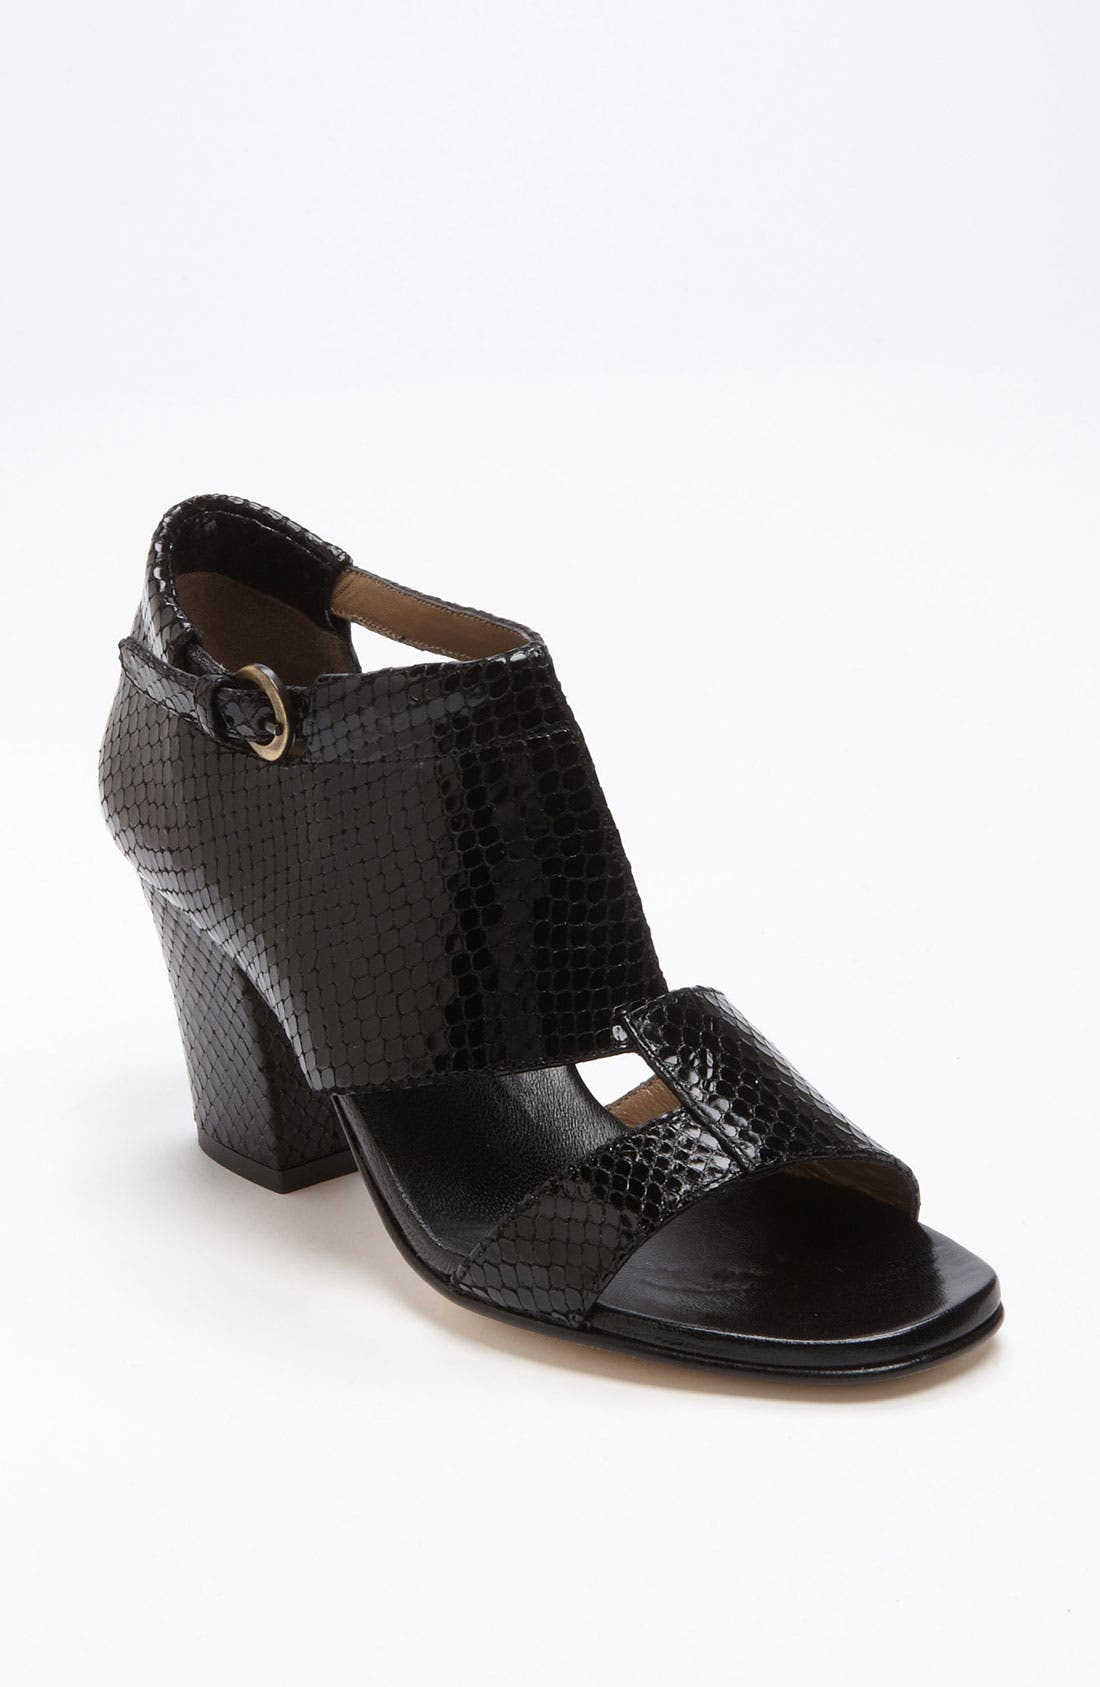 Alternate Image 1 Selected - Anyi Lu 'Electra' Sandal